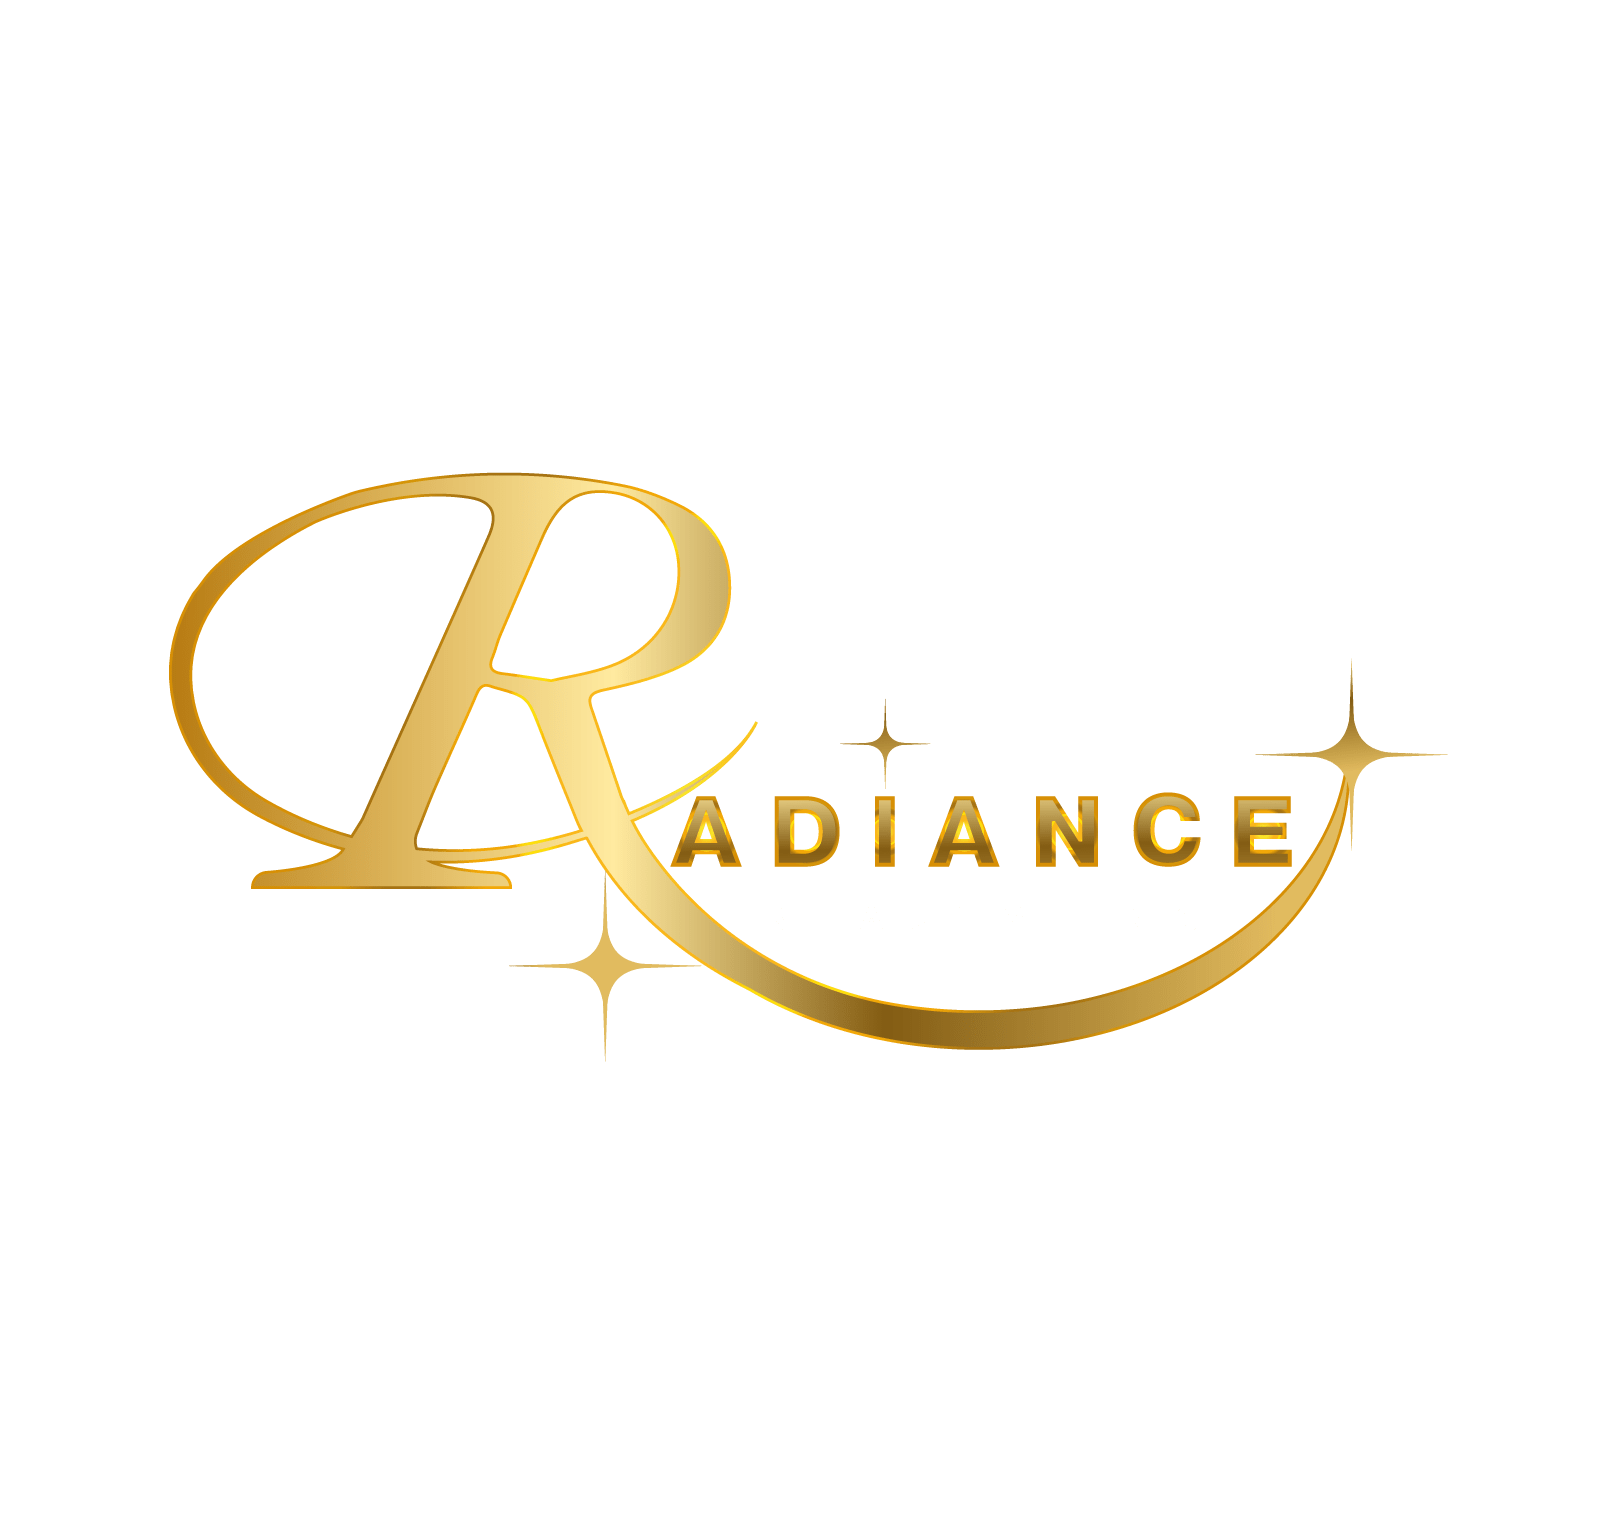 Radiance Hair Extension Salon and Supplies, was developed to cater for all your beauty needs. We are your one stop beauty shop and have carefully put together these terrific products and services all in one space for your convenience.